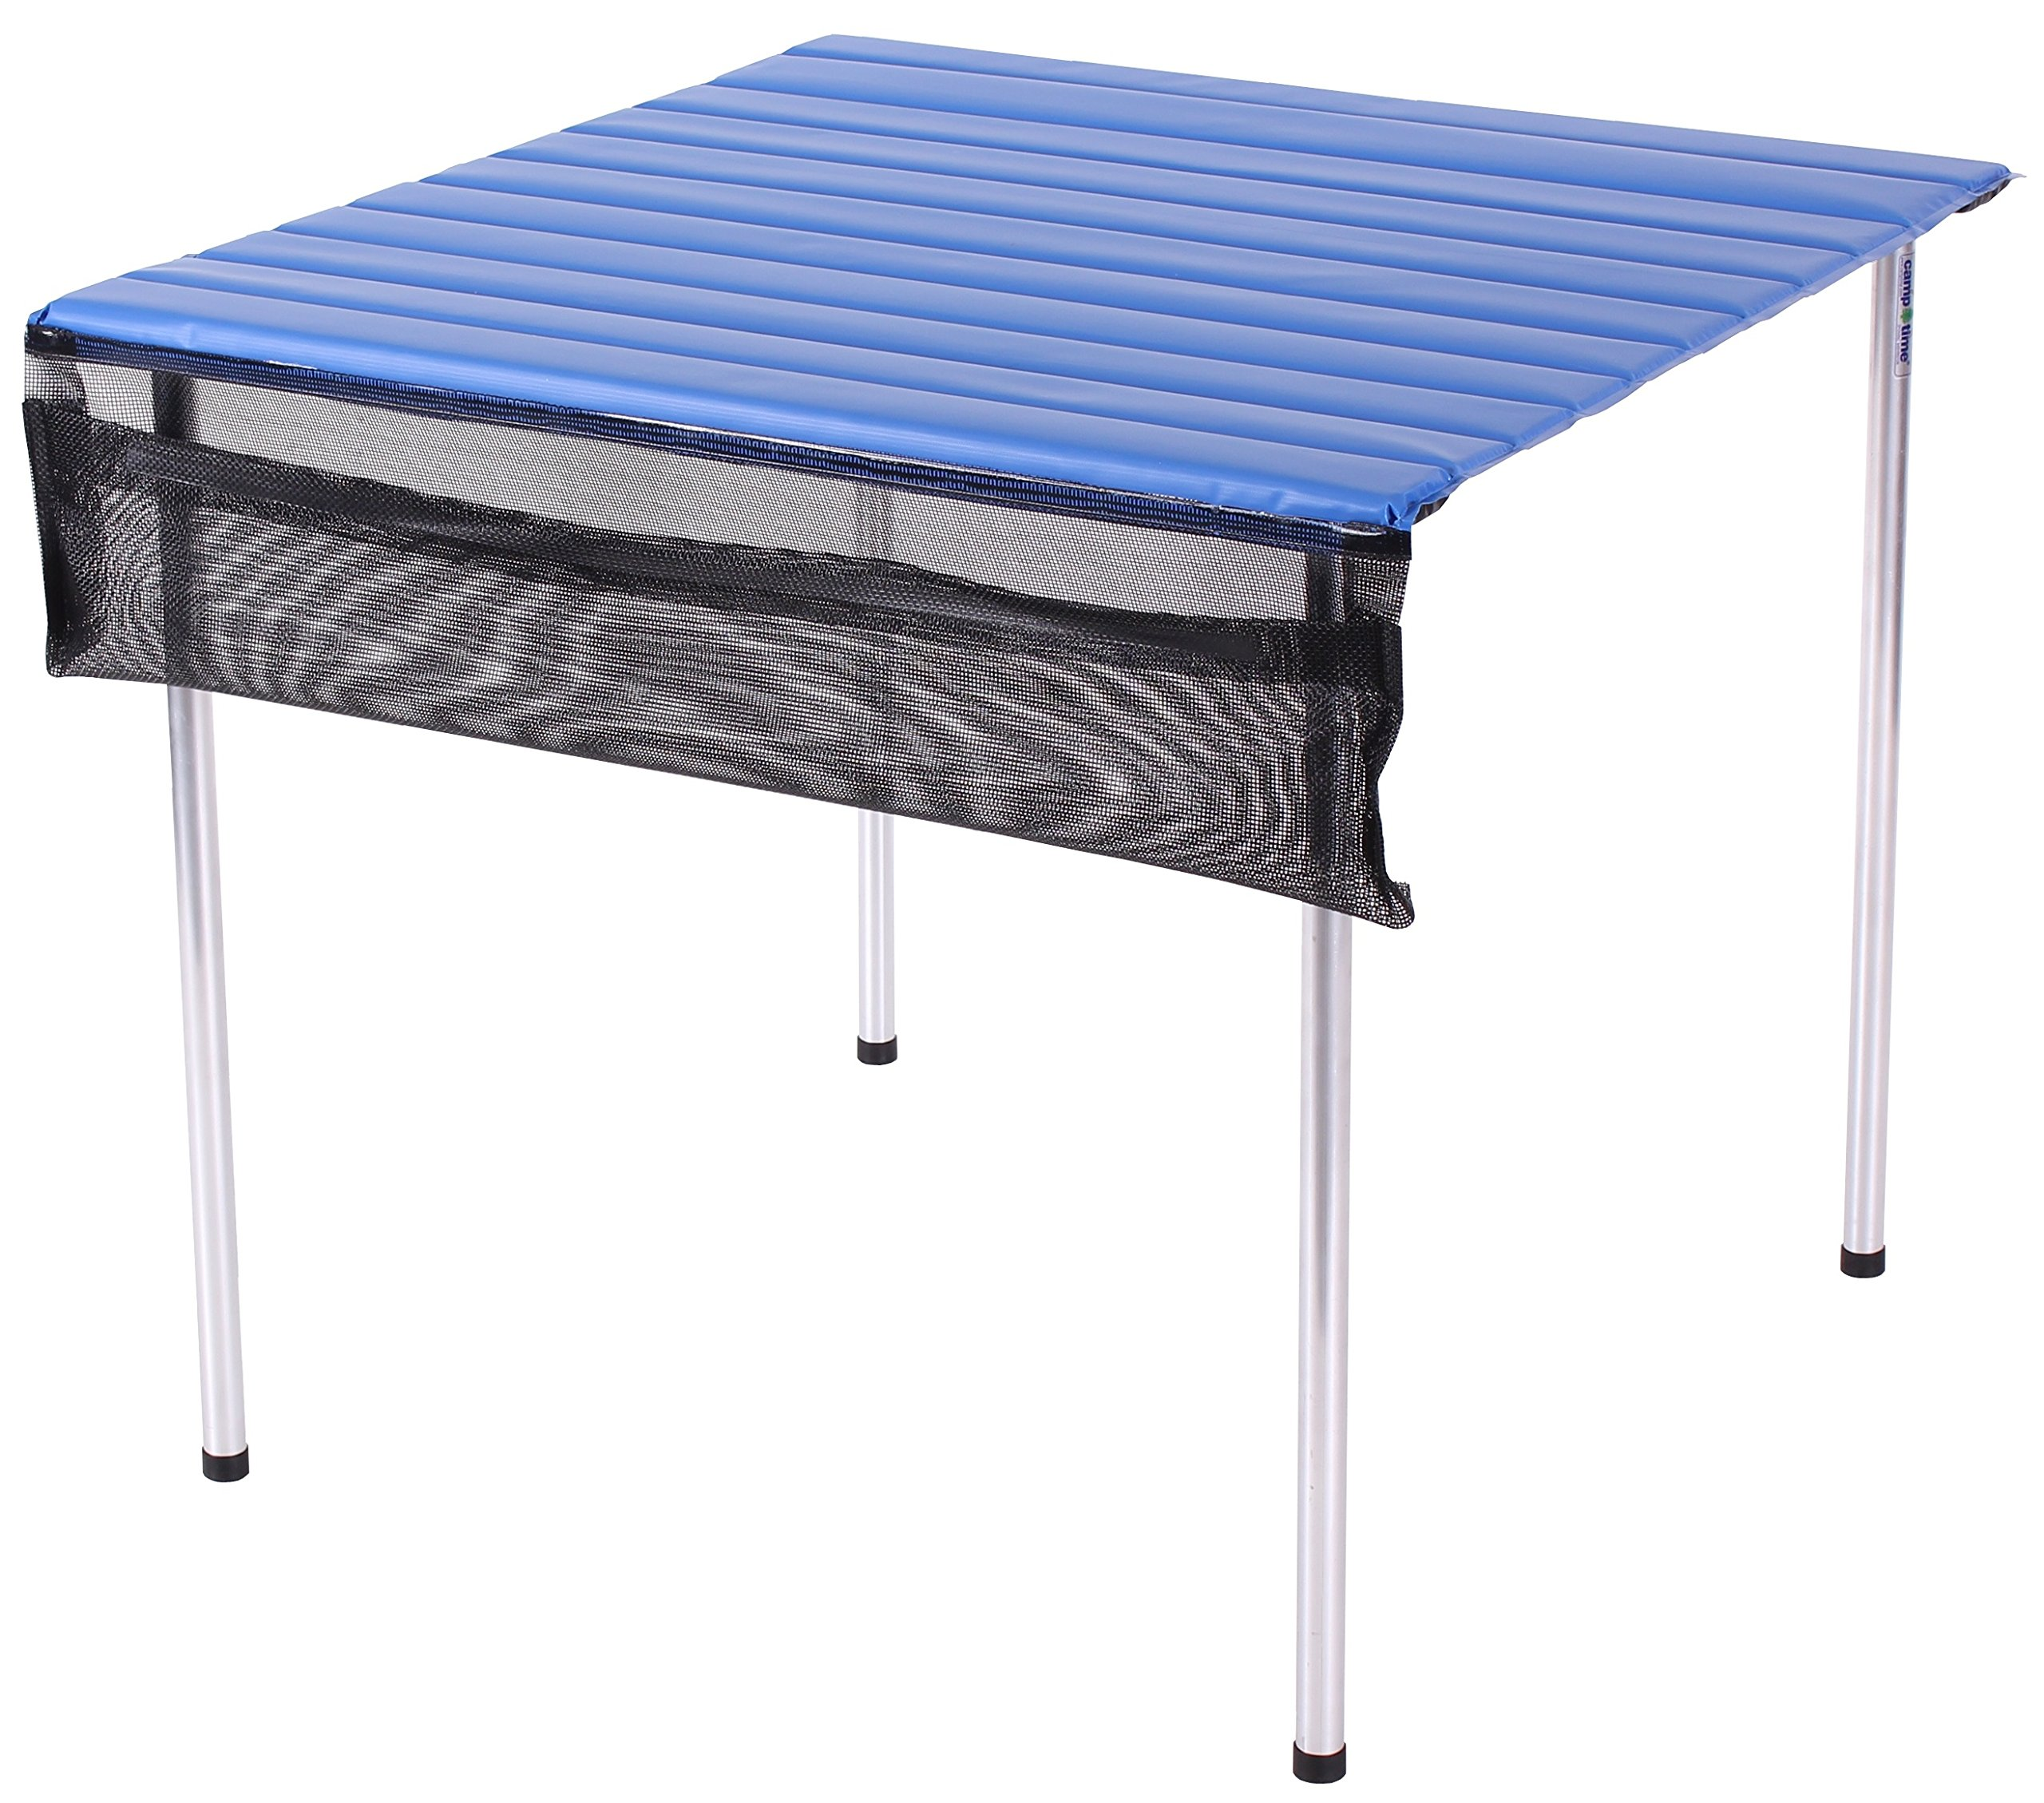 Camp Time, Roll-a-Table, Fold Up Roll Out Table Top, Compact, Portable, USA Made by Camp Time